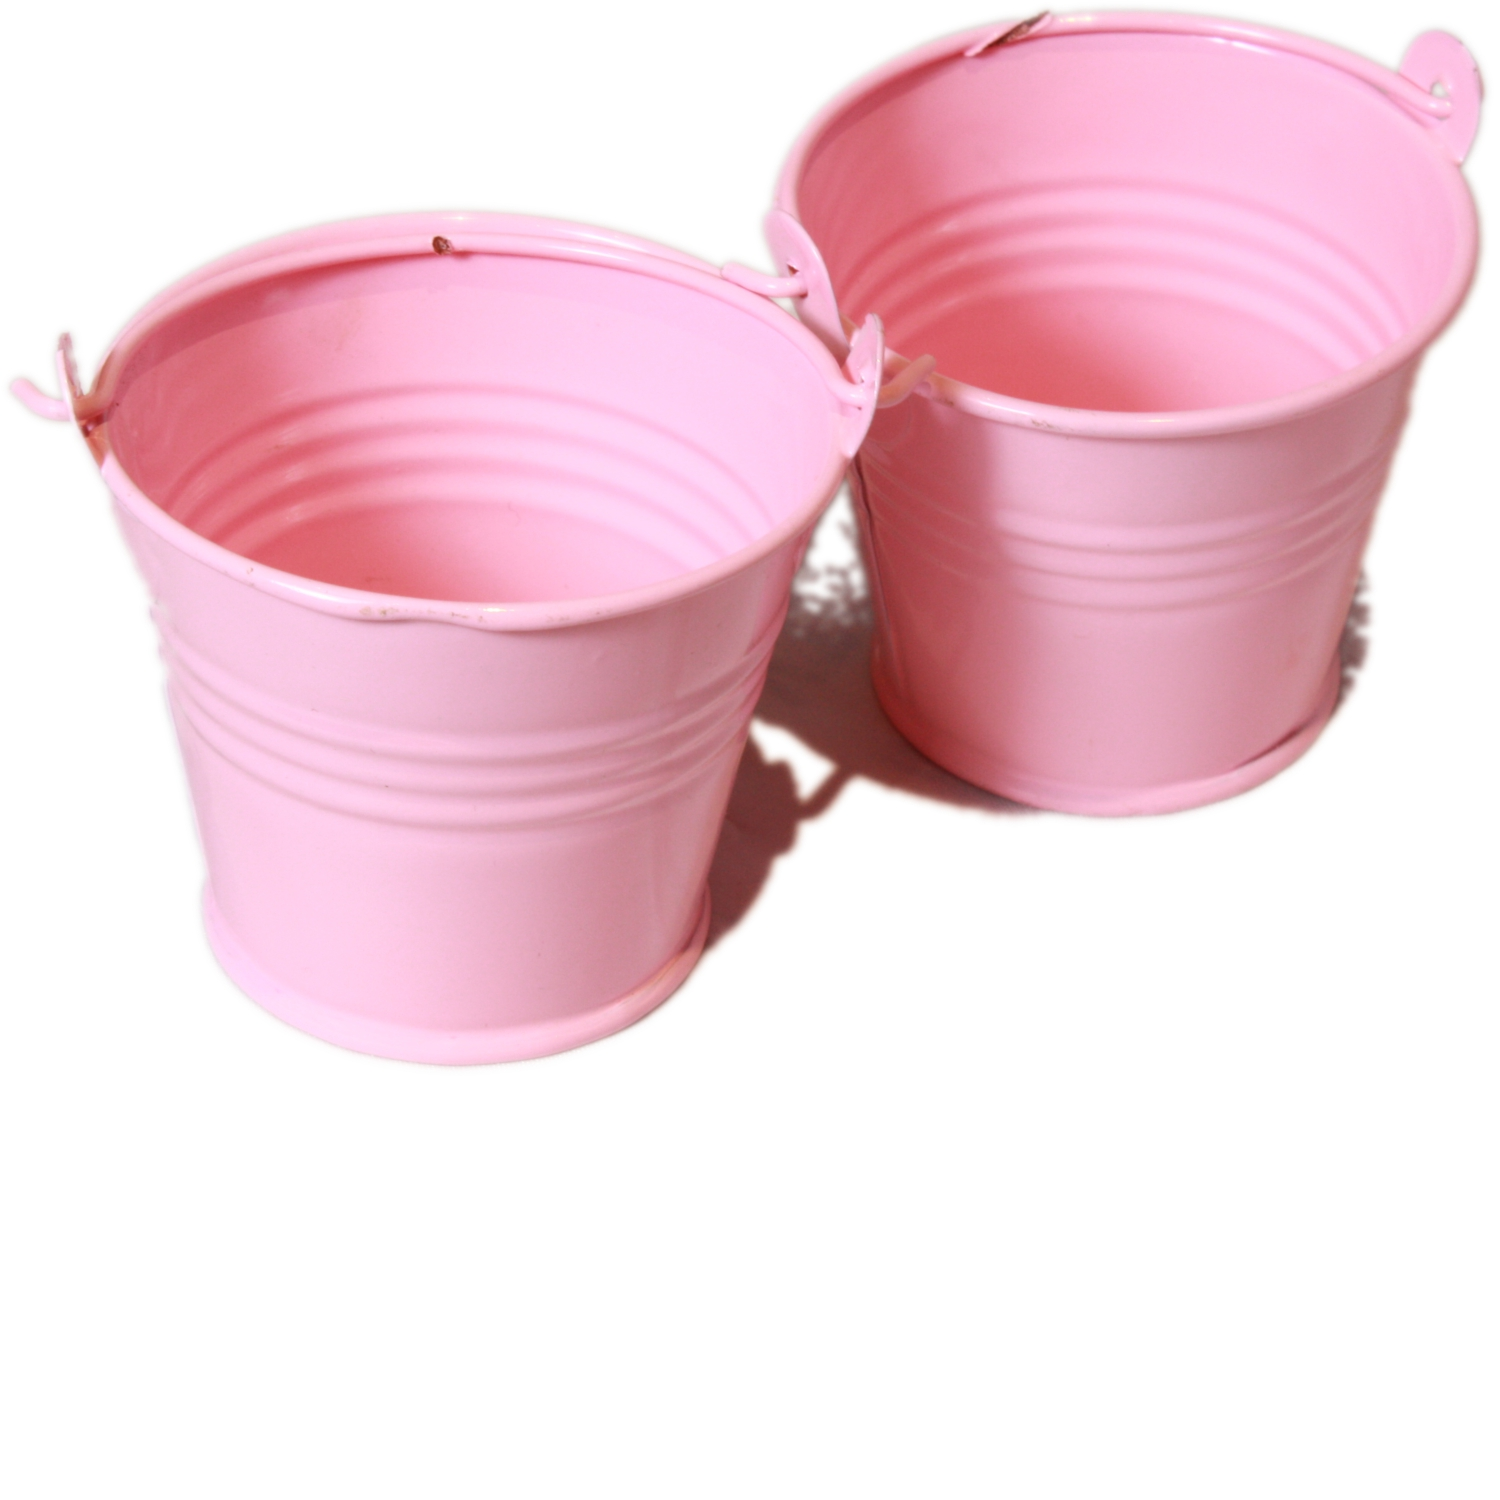 Set Of 2 Mini Craft Pail Buckets In Pastel Baby Pink